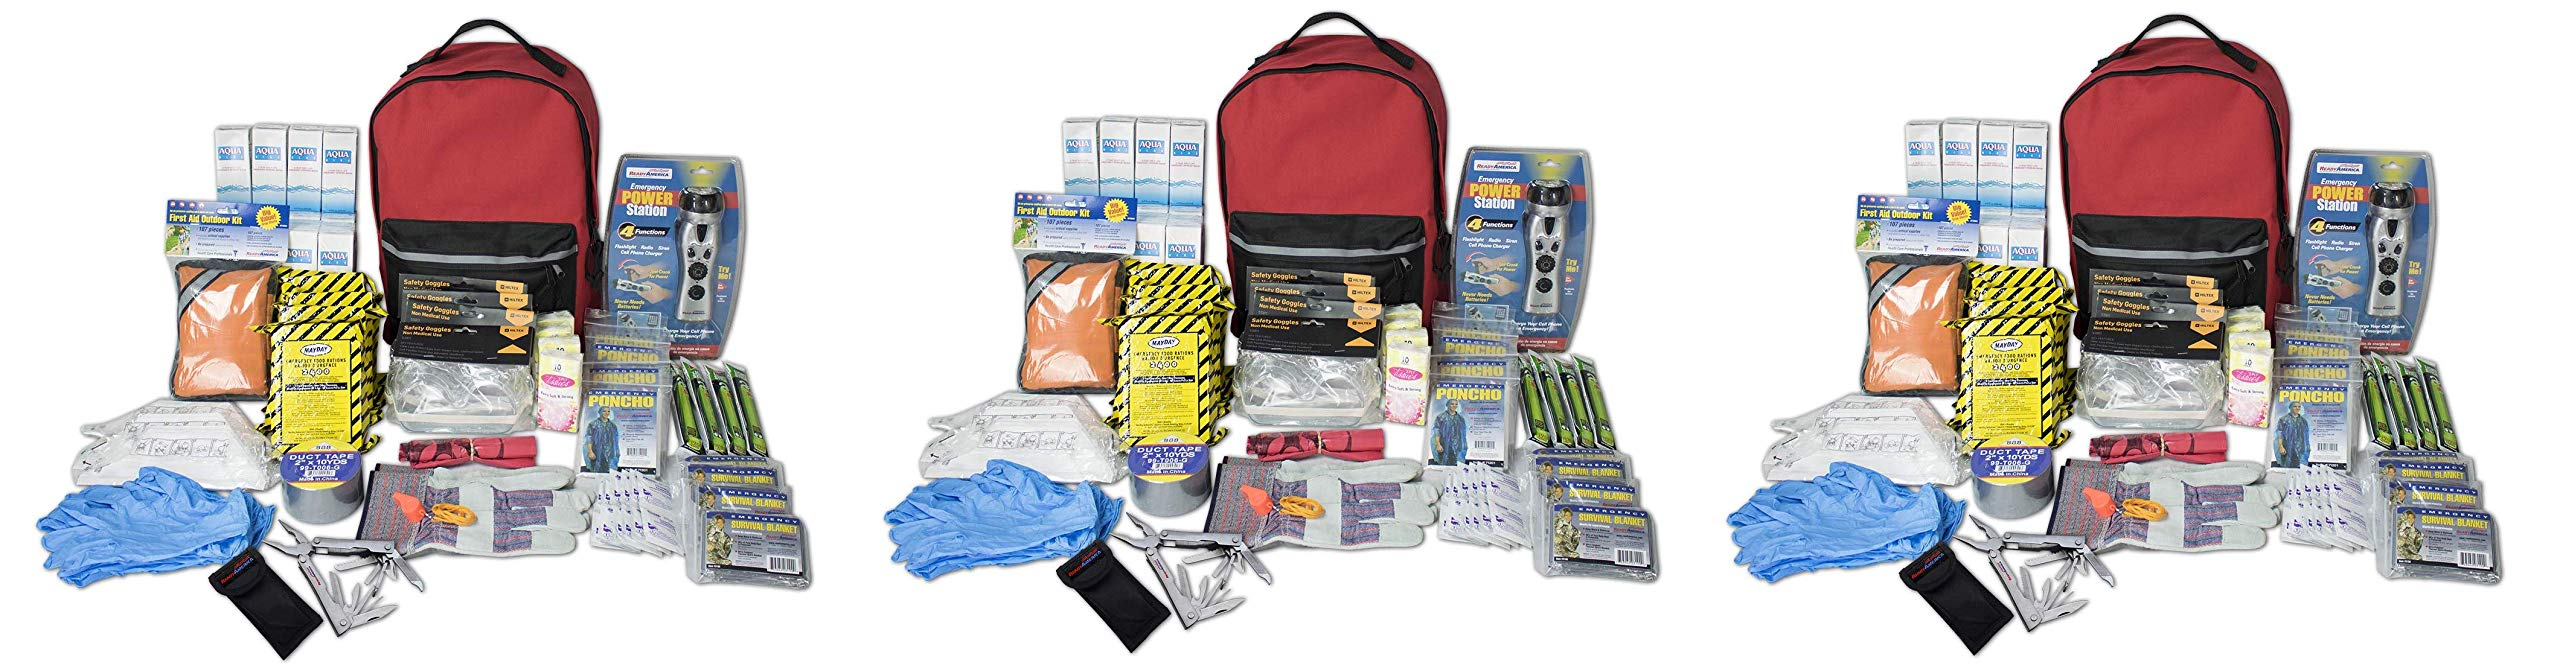 Ready America 70385 Deluxe Emergency Kit 4 Person Backpack (Thrее Расk)